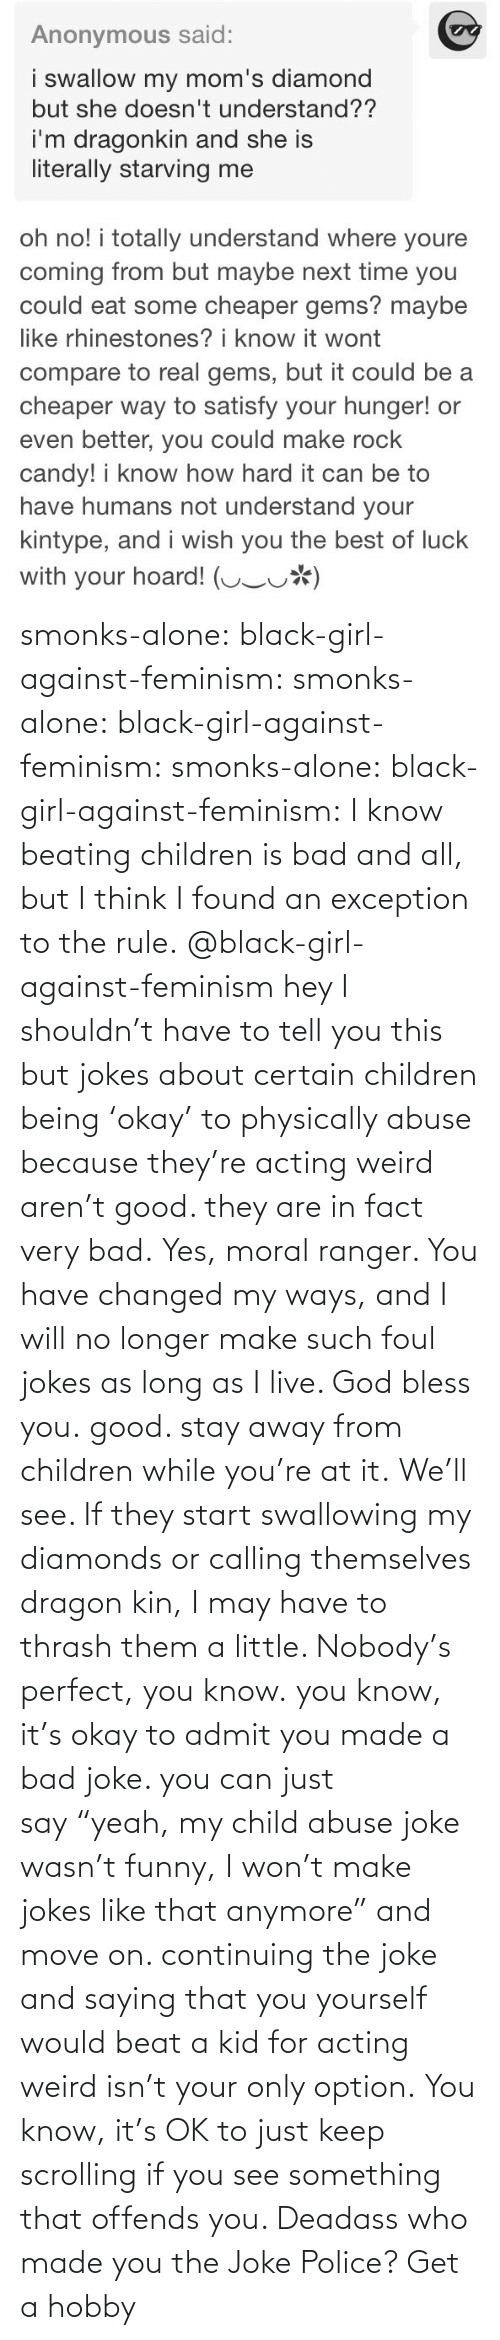 "calling: smonks-alone:  black-girl-against-feminism: smonks-alone:  black-girl-against-feminism:  smonks-alone:  black-girl-against-feminism: I know beating children is bad and all, but I think I found an exception to the rule. @black-girl-against-feminism hey I shouldn't have to tell you this but jokes about certain children being 'okay' to physically abuse because they're acting weird aren't good. they are in fact very bad.  Yes, moral ranger. You have changed my ways, and I will no longer make such foul jokes as long as I live. God bless you.  good. stay away from children while you're at it.  We'll see. If they start swallowing my diamonds or calling themselves dragon kin, I may have to thrash them a little. Nobody's perfect, you know.  you know, it's okay to admit you made a bad joke. you can just say ""yeah, my child abuse joke wasn't funny, I won't make jokes like that anymore"" and move on. continuing the joke and saying that you yourself would beat a kid for acting weird isn't your only option.   You know, it's OK to just keep scrolling if you see something that offends you. Deadass who made you the Joke Police? Get a hobby"